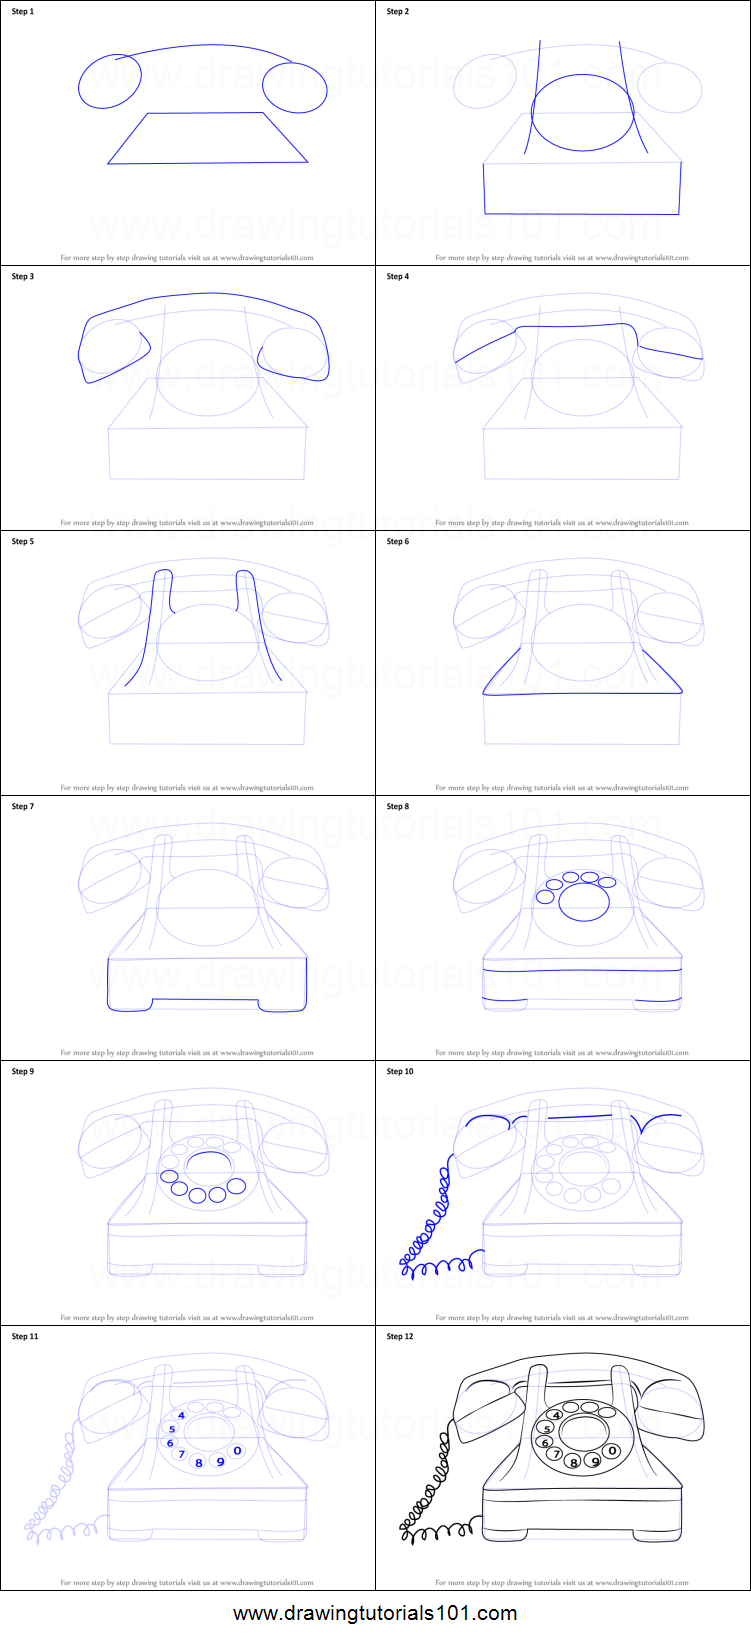 How To Draw A Vintage Phone Printable Step By Drawing Sheet DrawingTutorials101